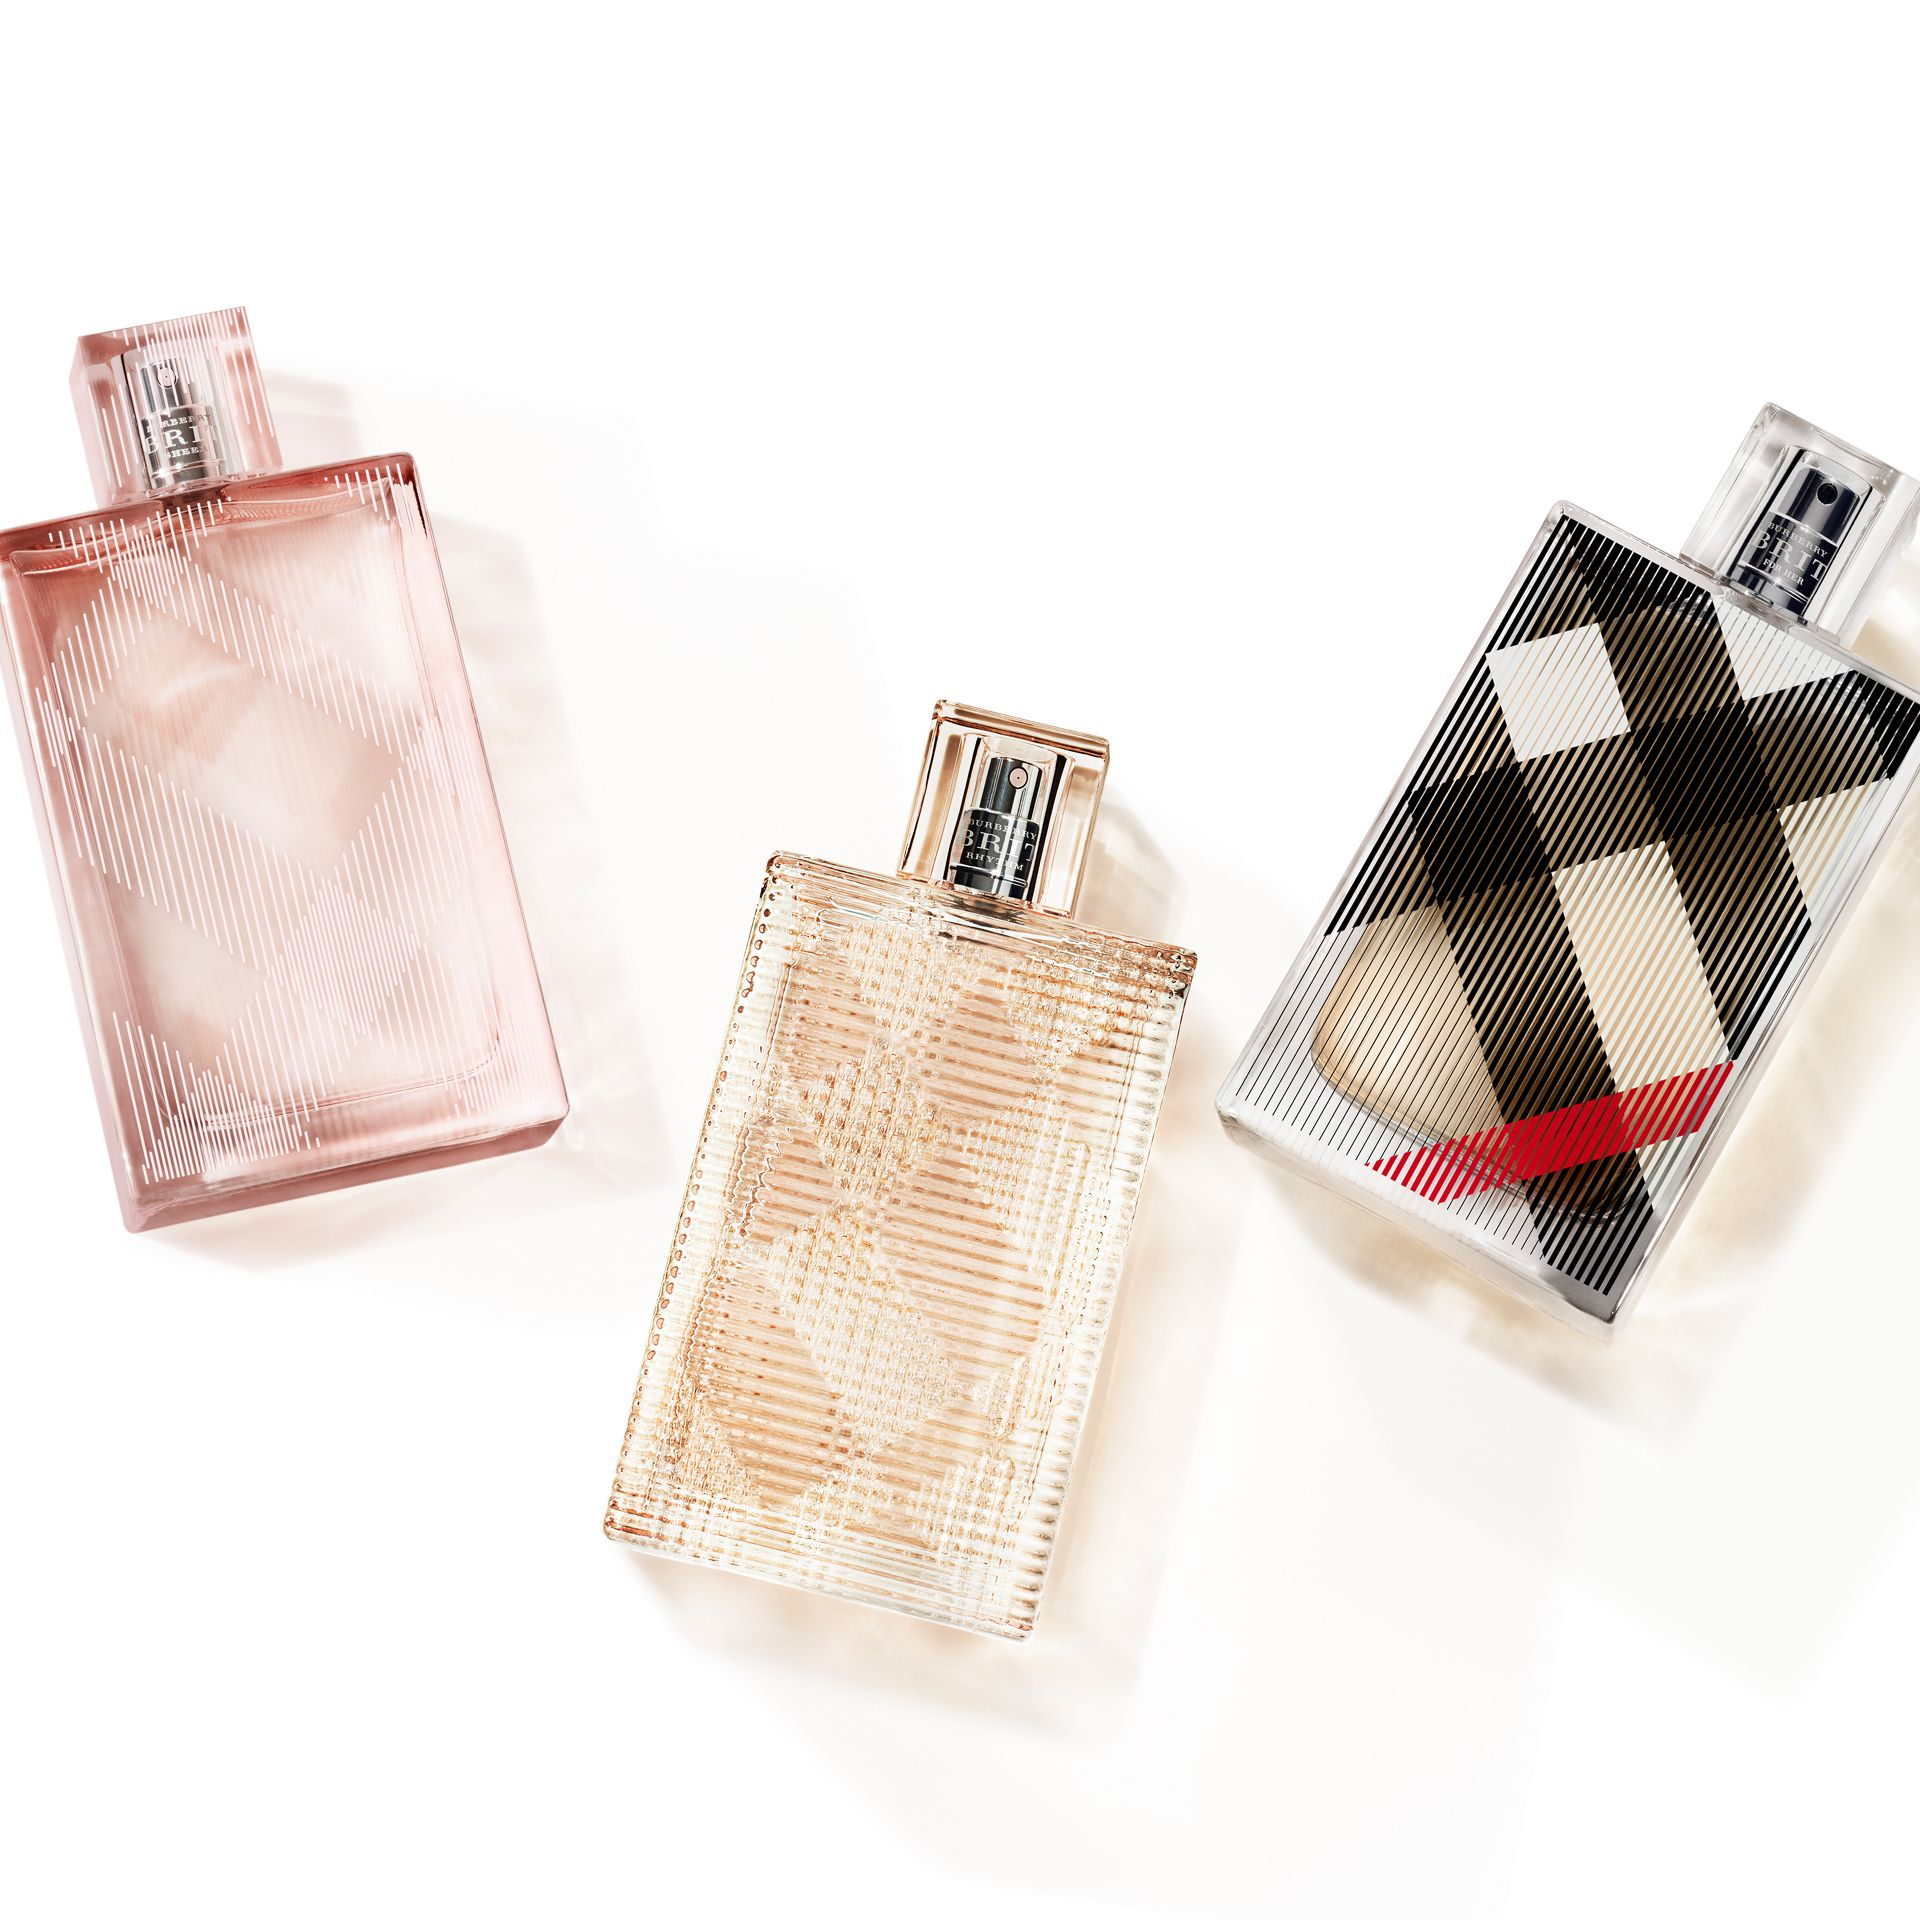 Burberry Brit Sheer Eau de Toilette 50ml - Women | Burberry Canada - gallery image 2